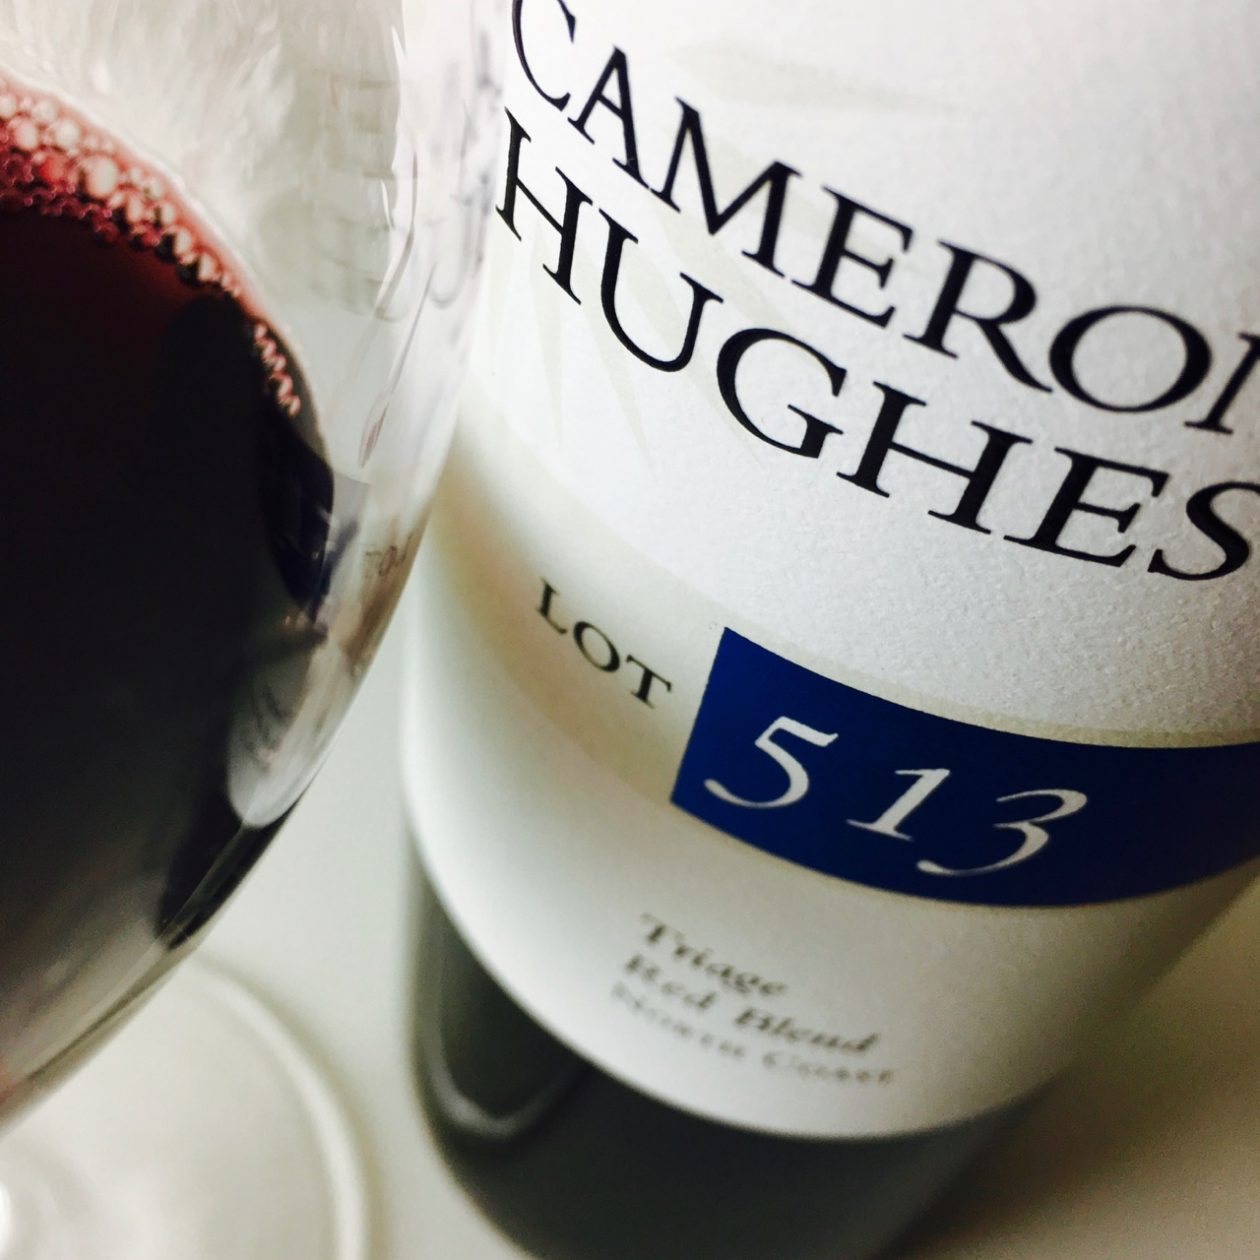 NV Cameron Hughes Lot 513 Red Blend Triage North Coast